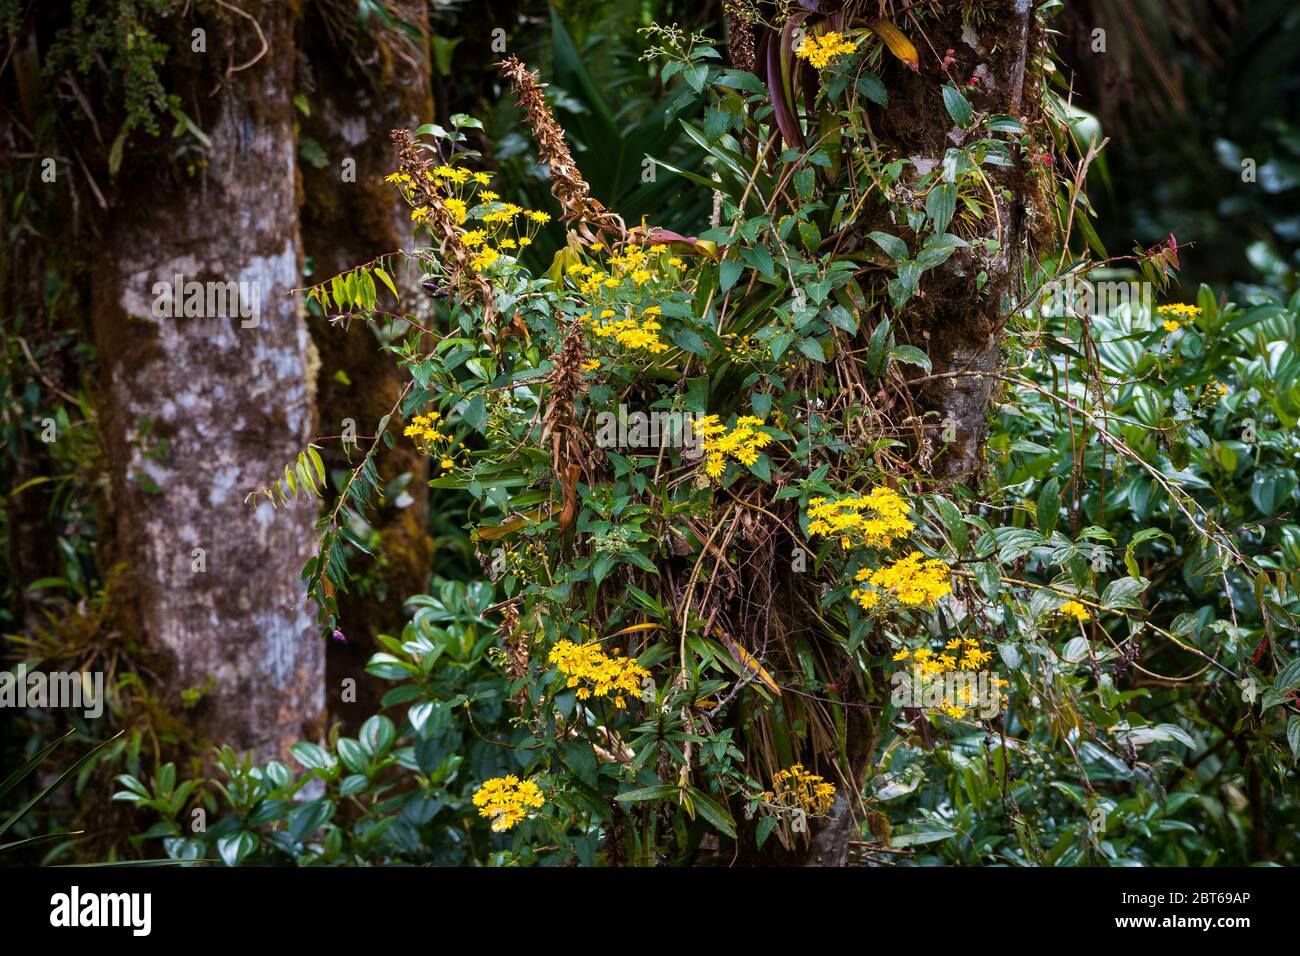 Beautiful yellow flowers in the lush cloudforest in La Amistad national park, Chiriqui province, Republic of Panama Stock Photo